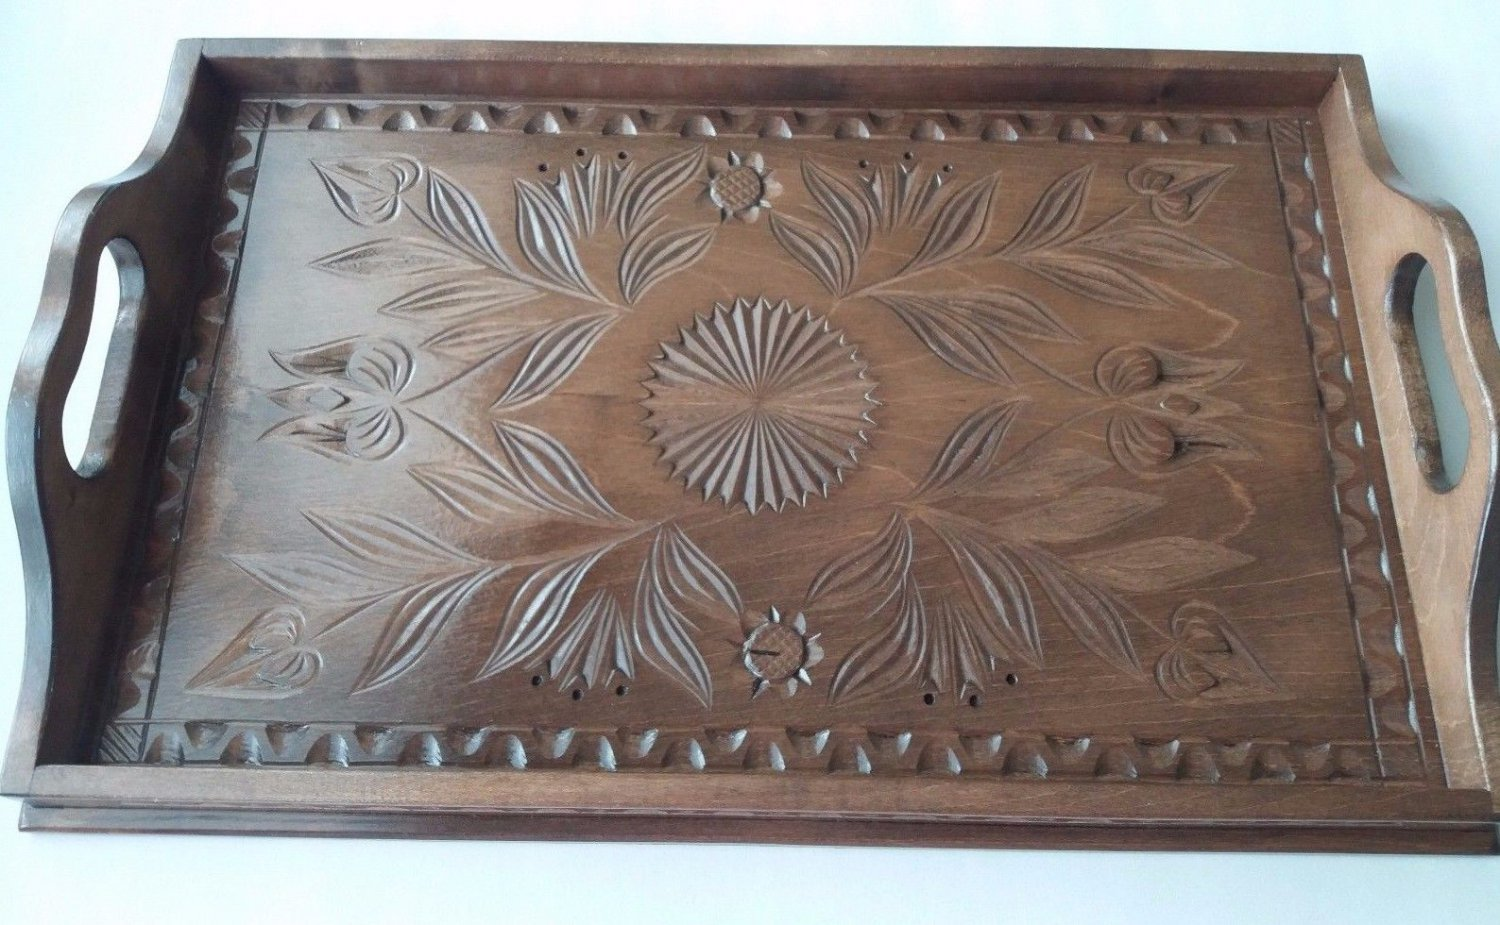 Big handcarved tray salver plate home decor serving dish unique brown maple wood